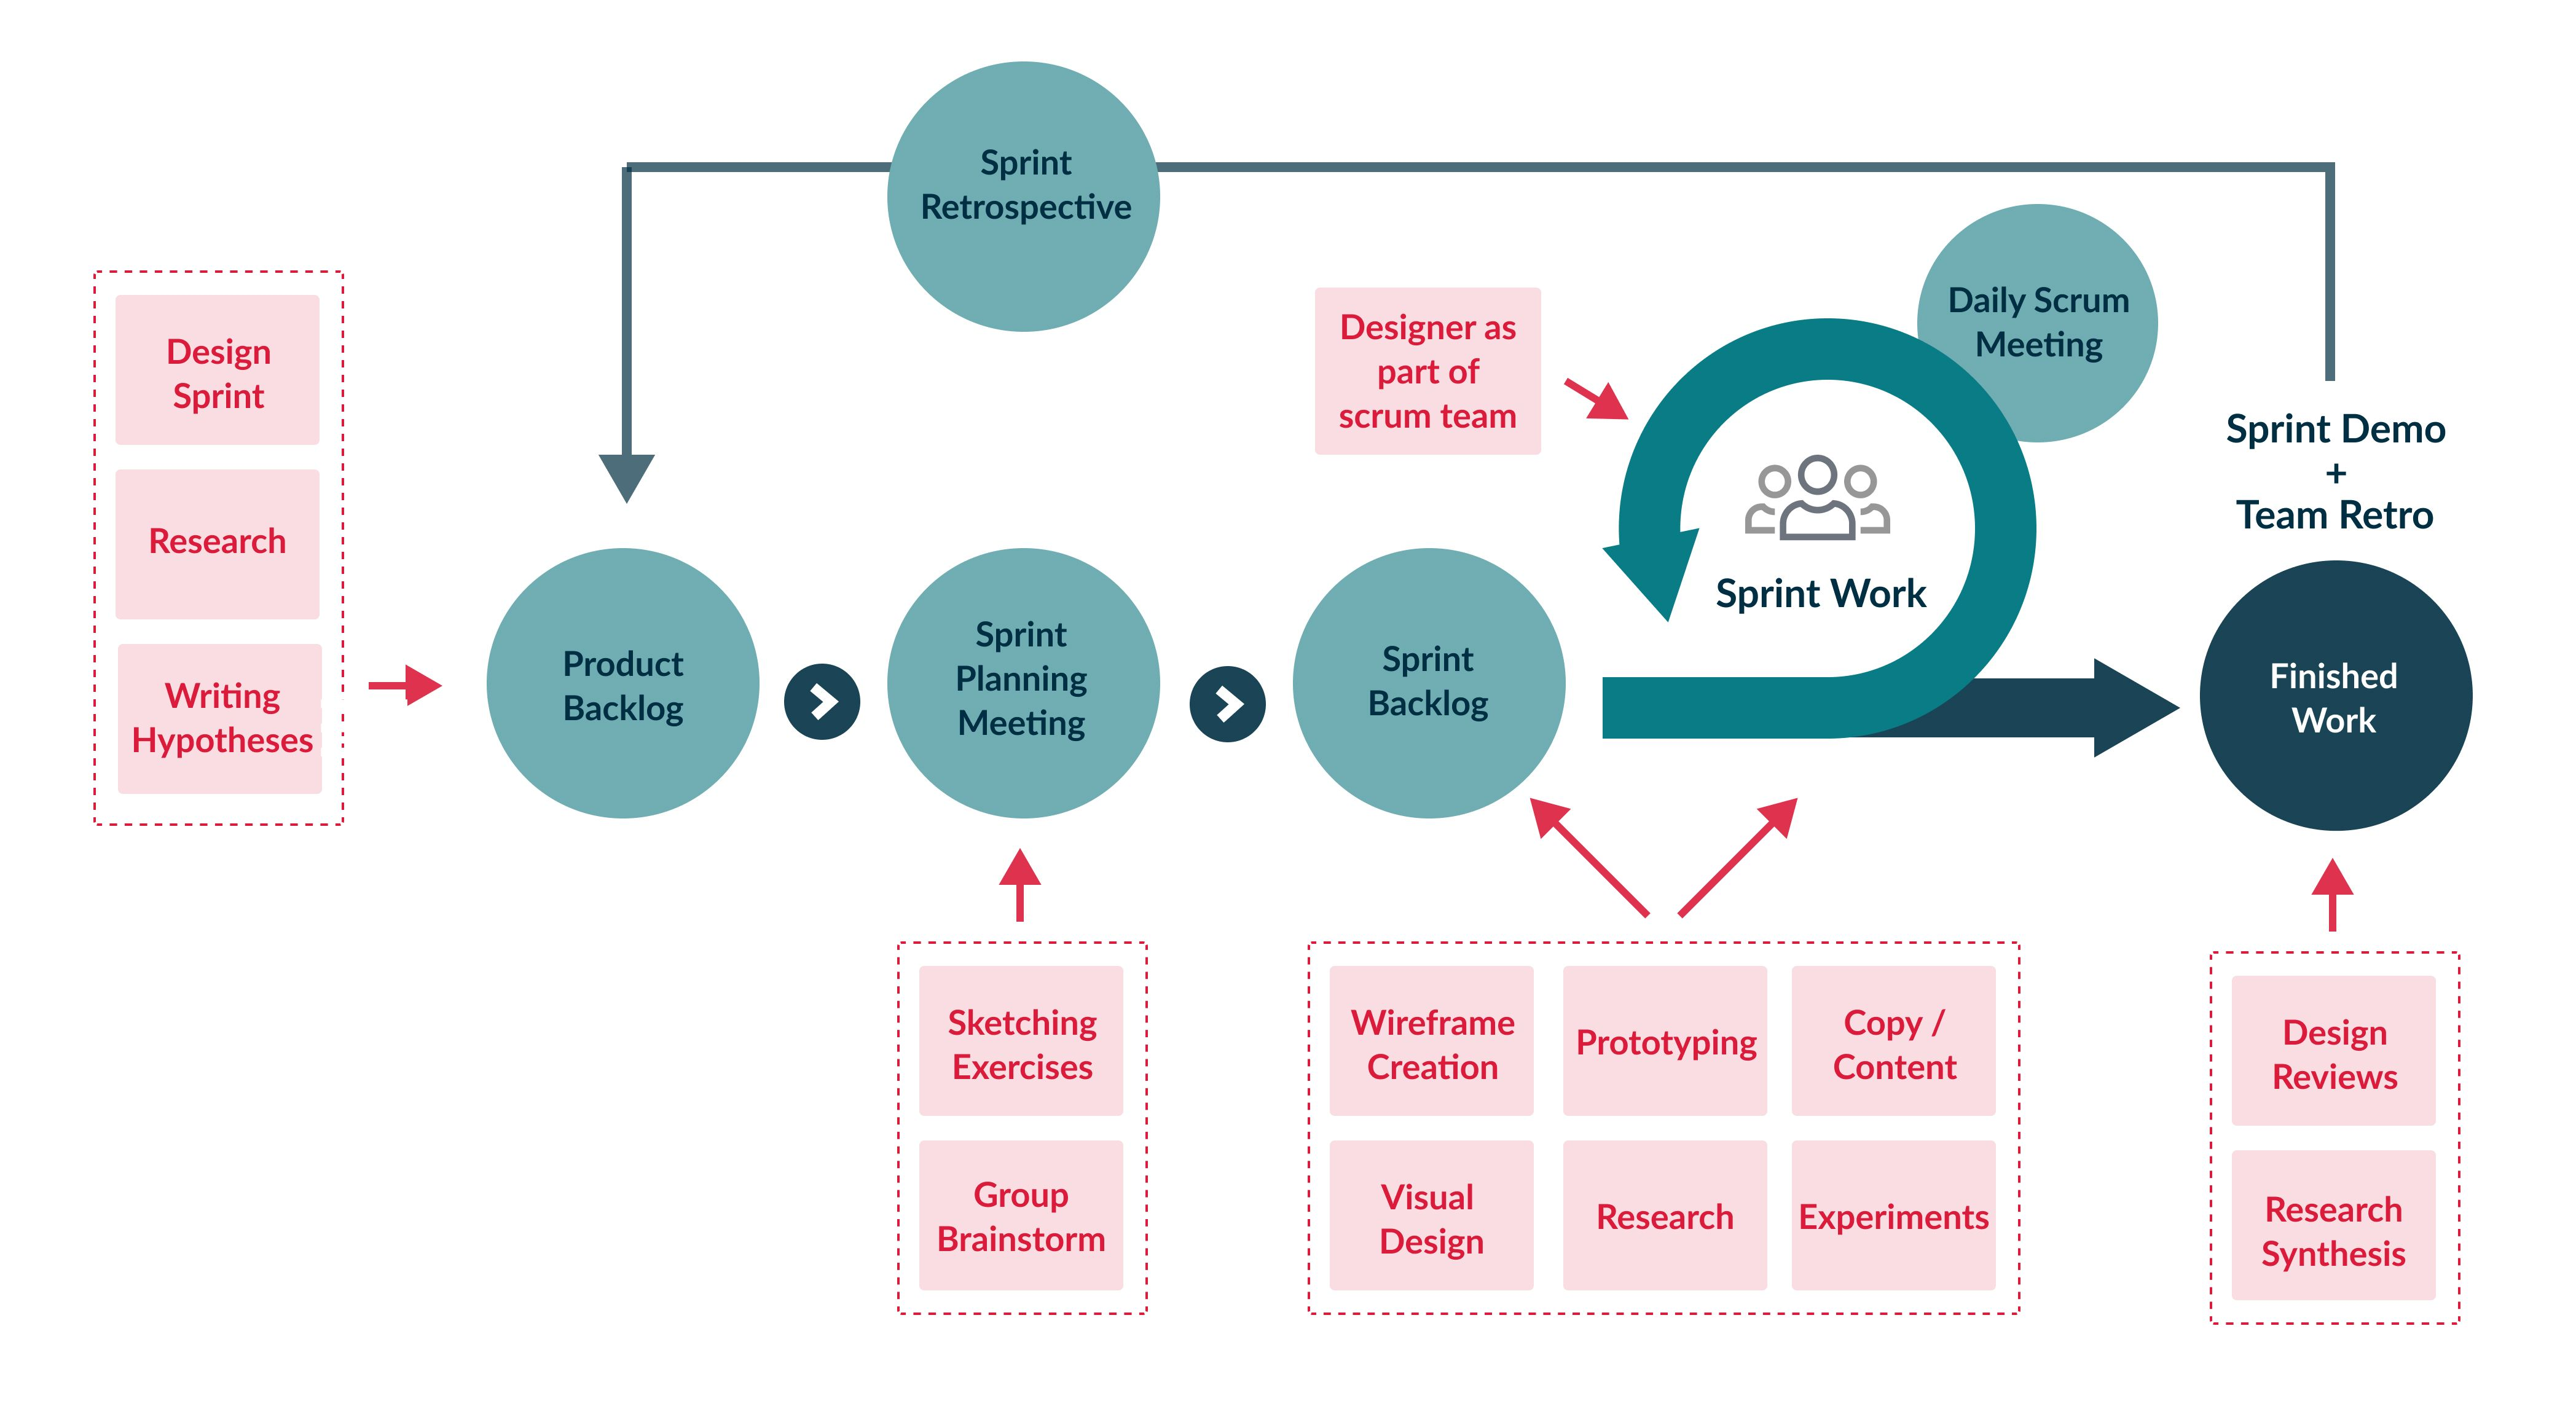 An image of a flow chart showing the different stages of an agile development cycle.